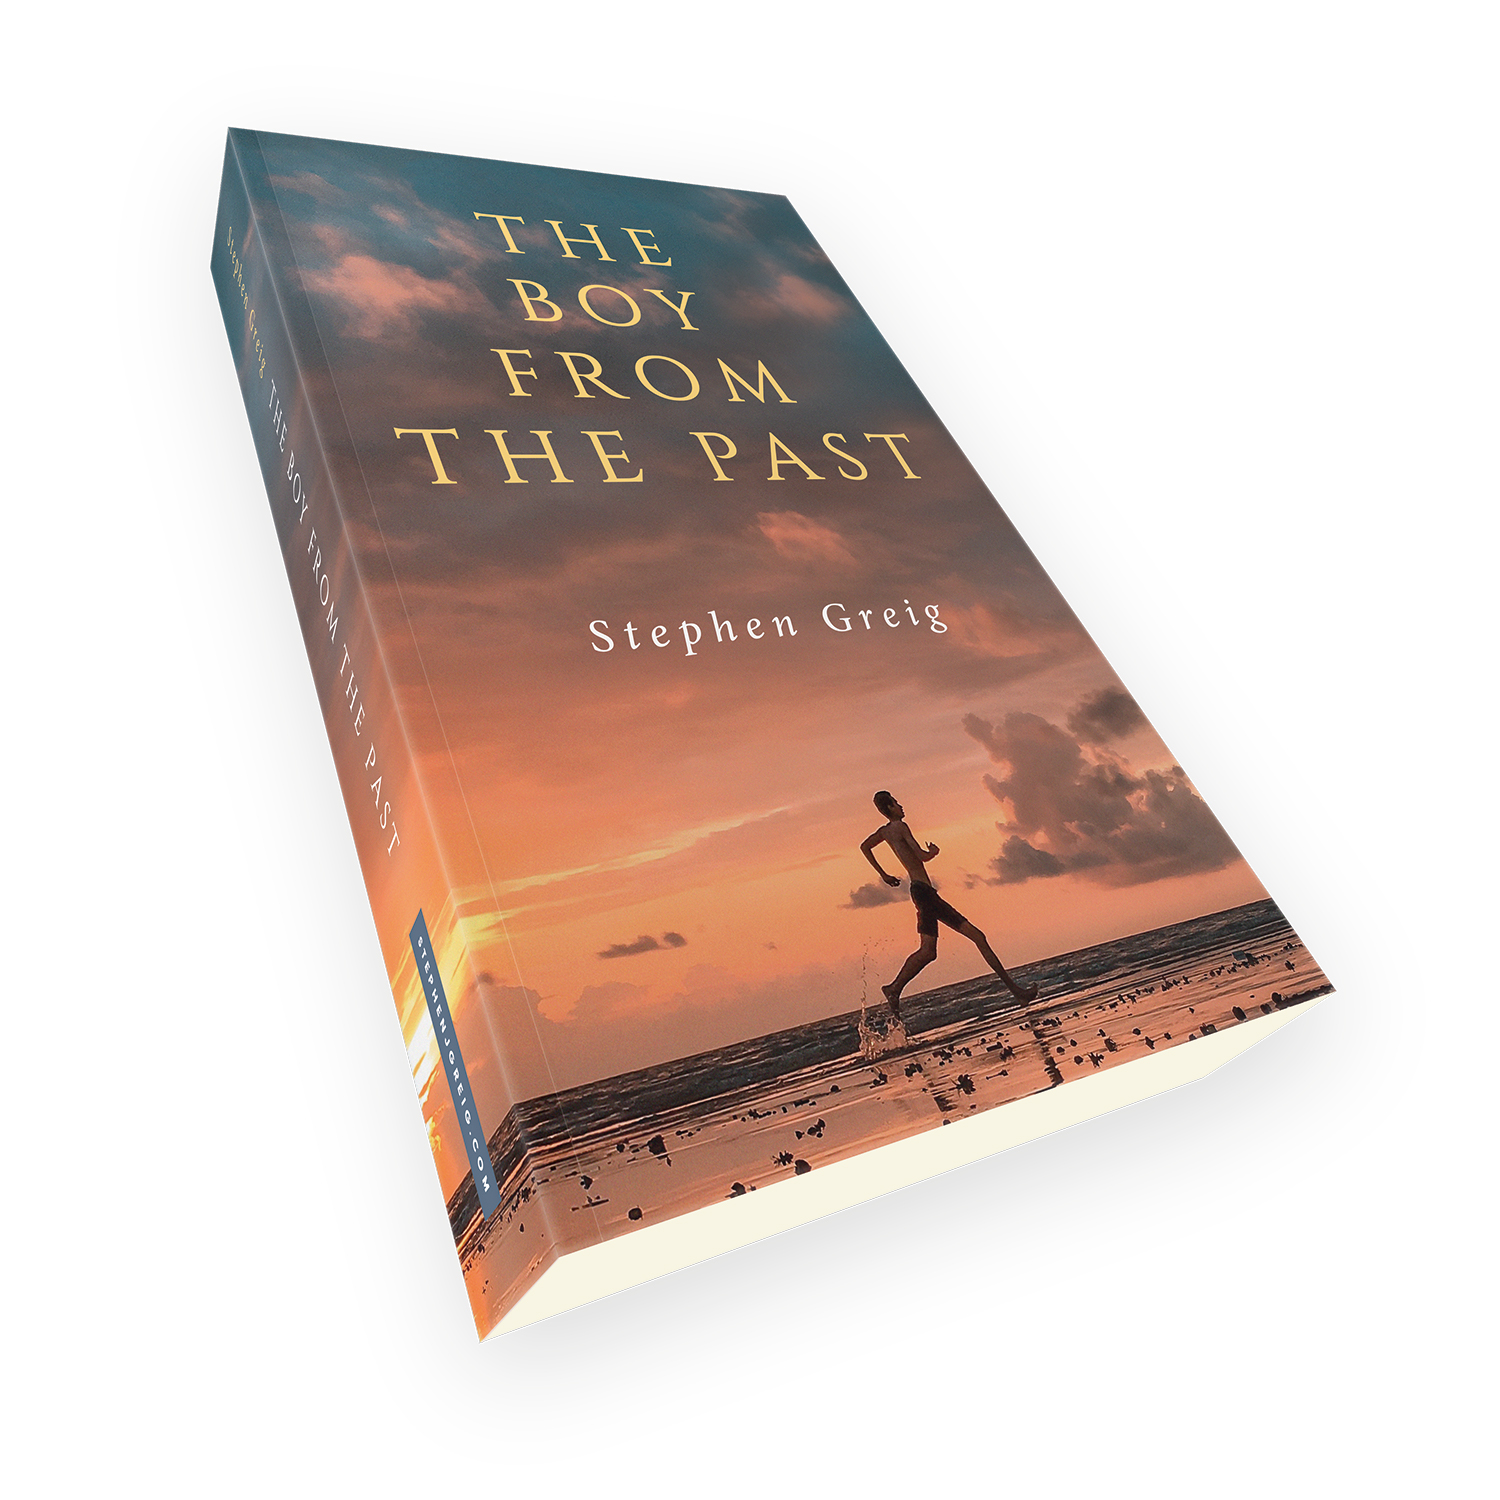 'The Boy From The Past' is an excellent time-spanning mystery, by author Stephen Grieg. The book cover and interior were designed by Mark Thomas, of coverness.com. To find out more about my book design services, please visit www.coverness.com.